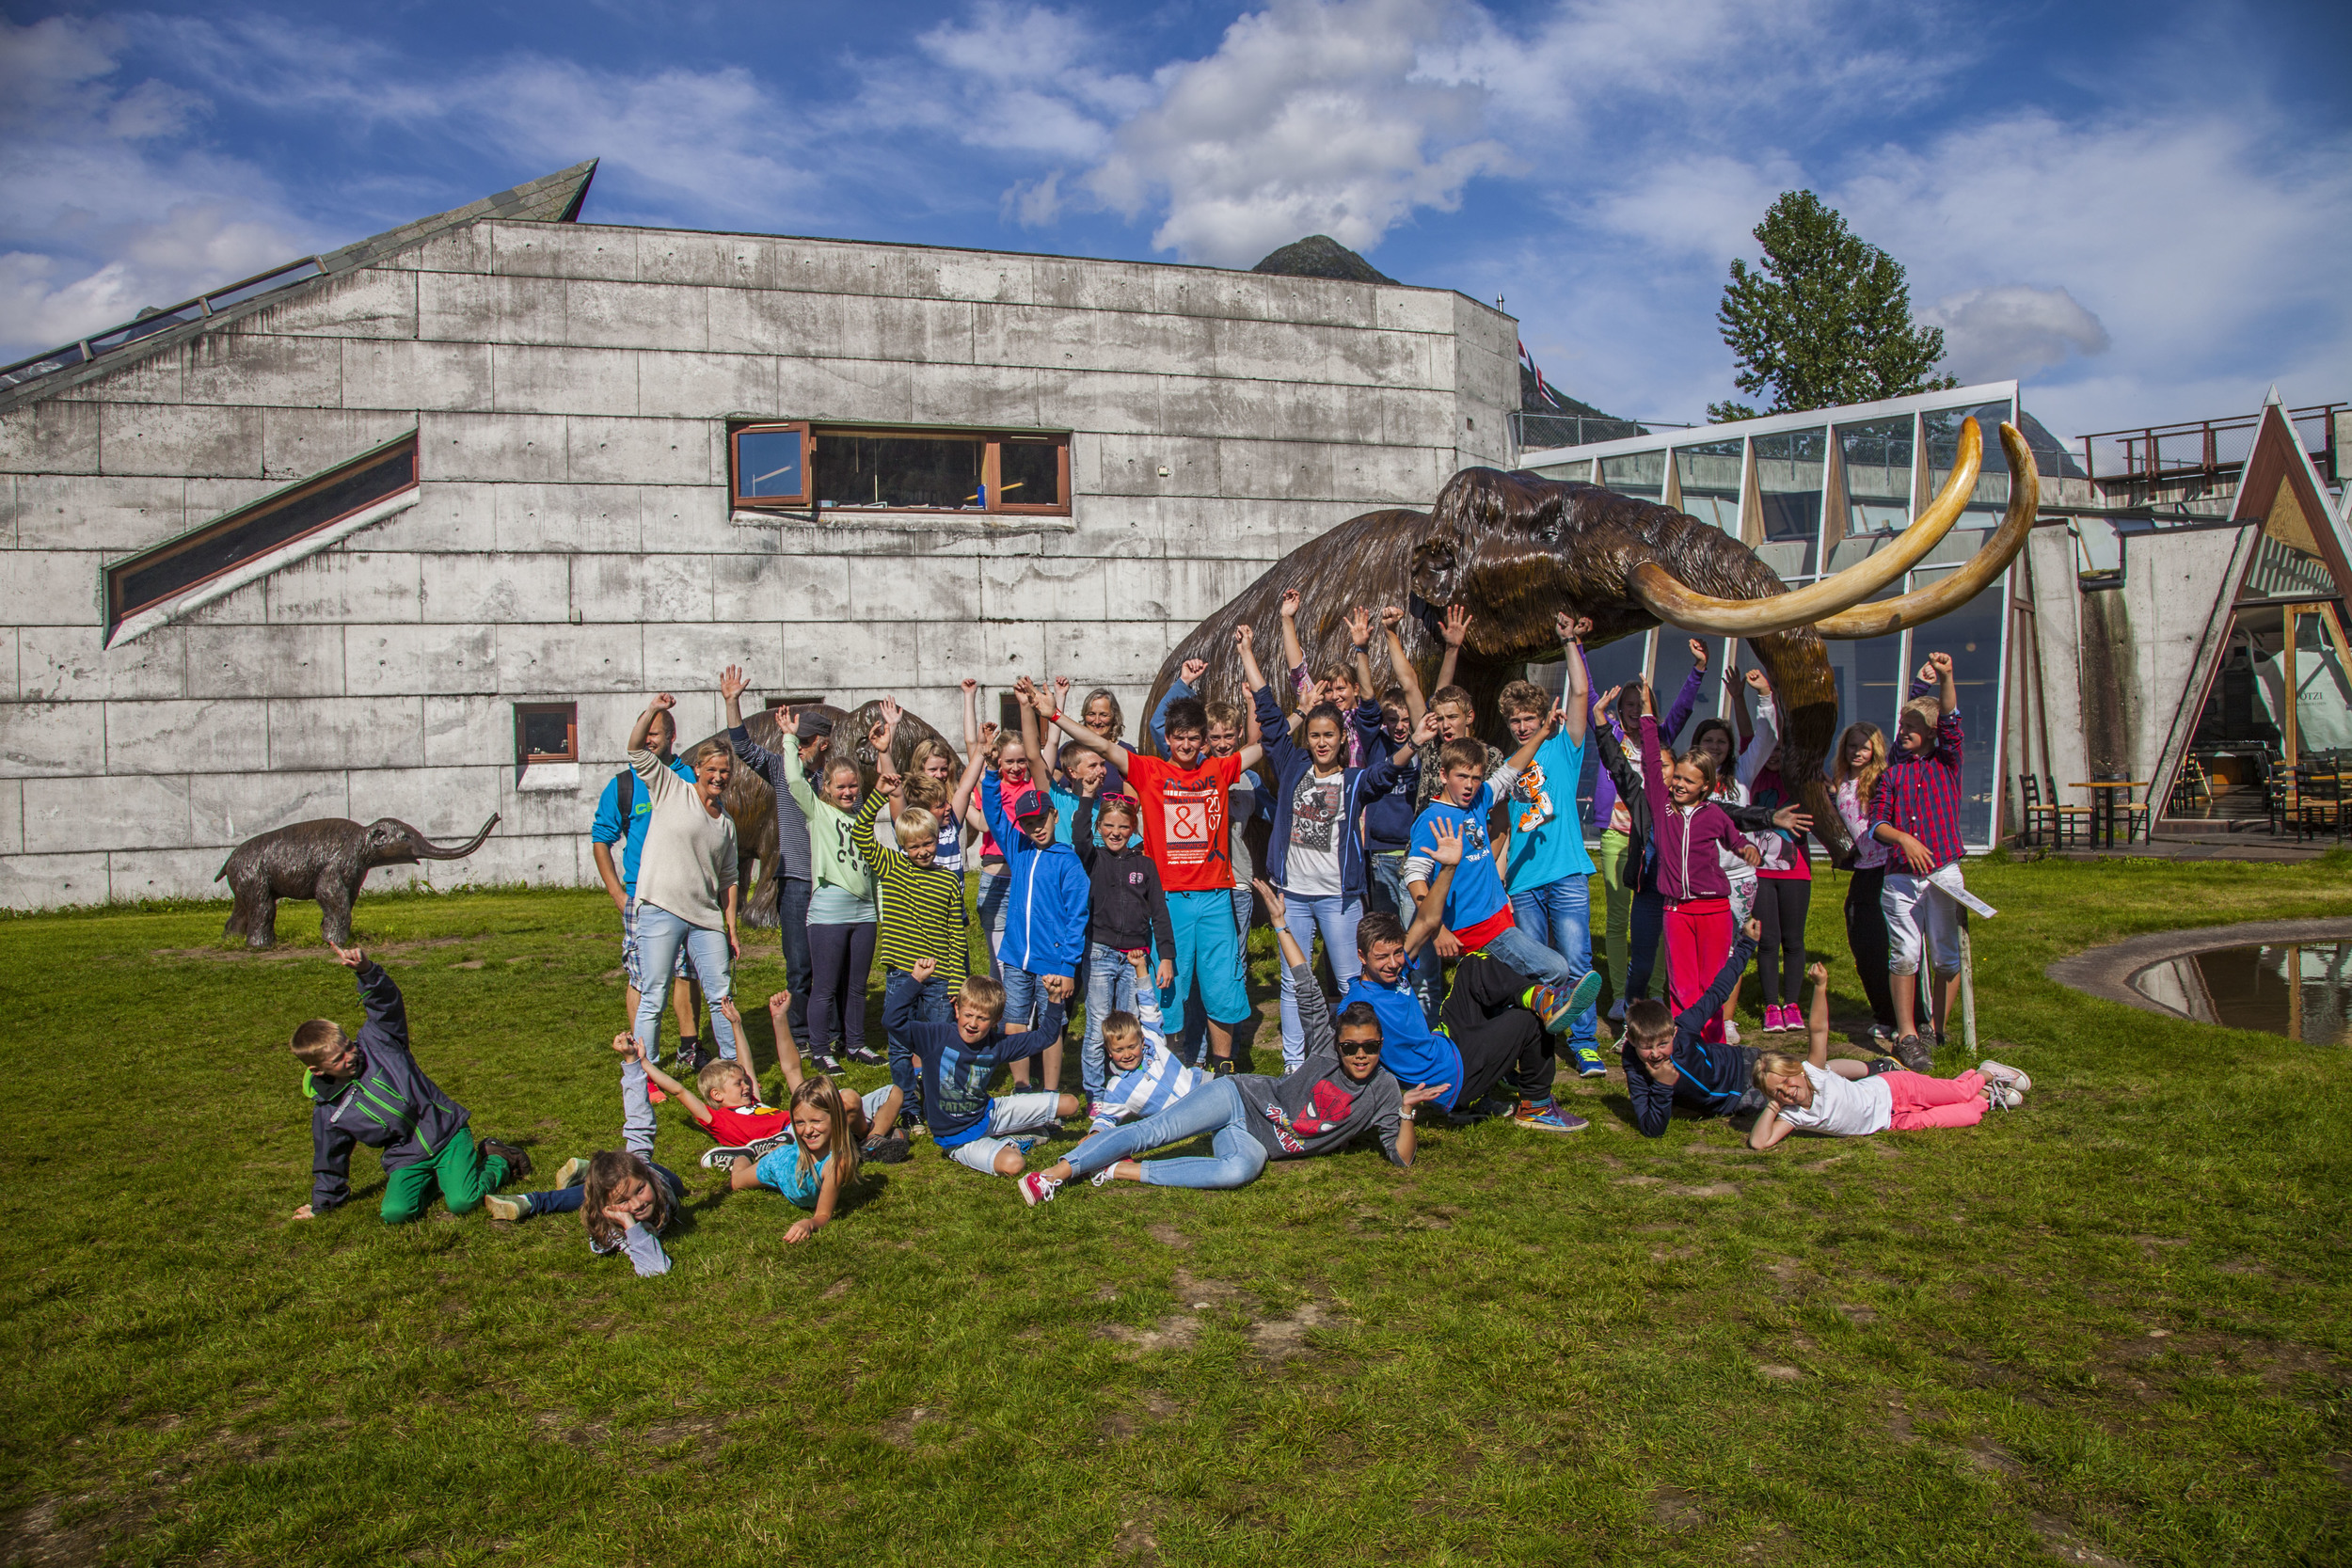 The mammoths are popular with the kids! Photo: Gaute D. Bøyum, 2013.